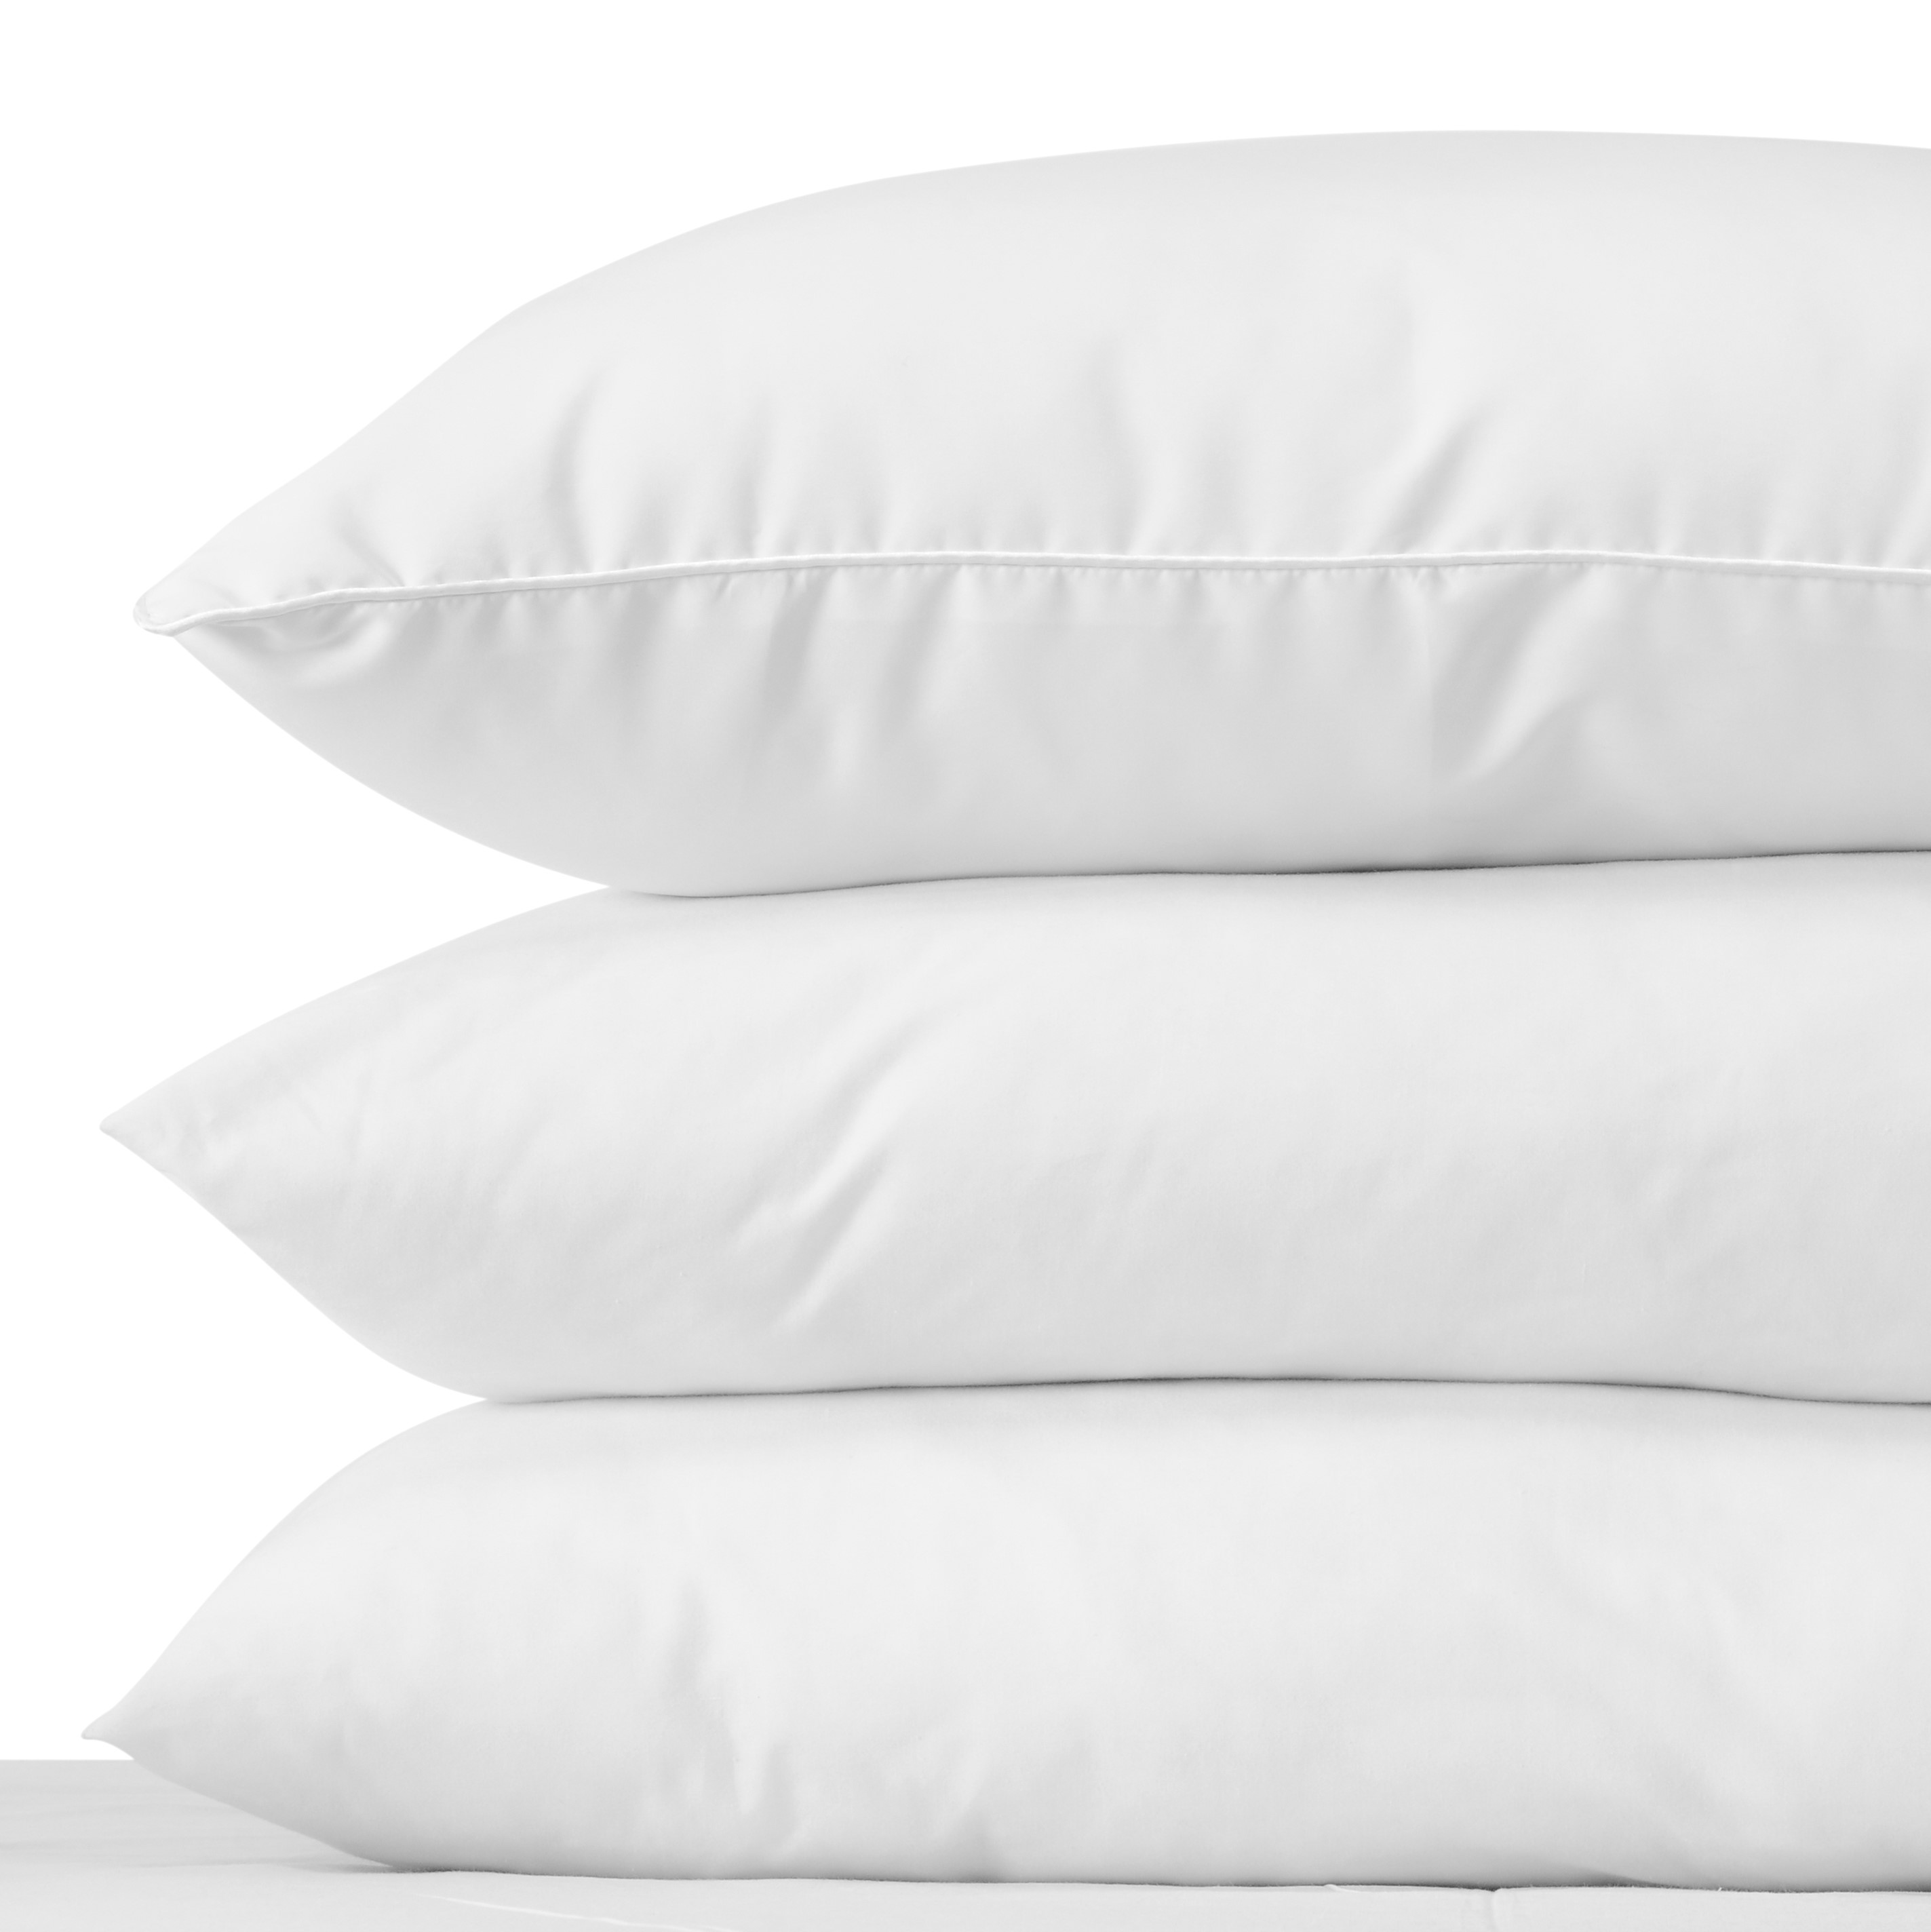 buy 100% Hollowfibre flame retardant pillow